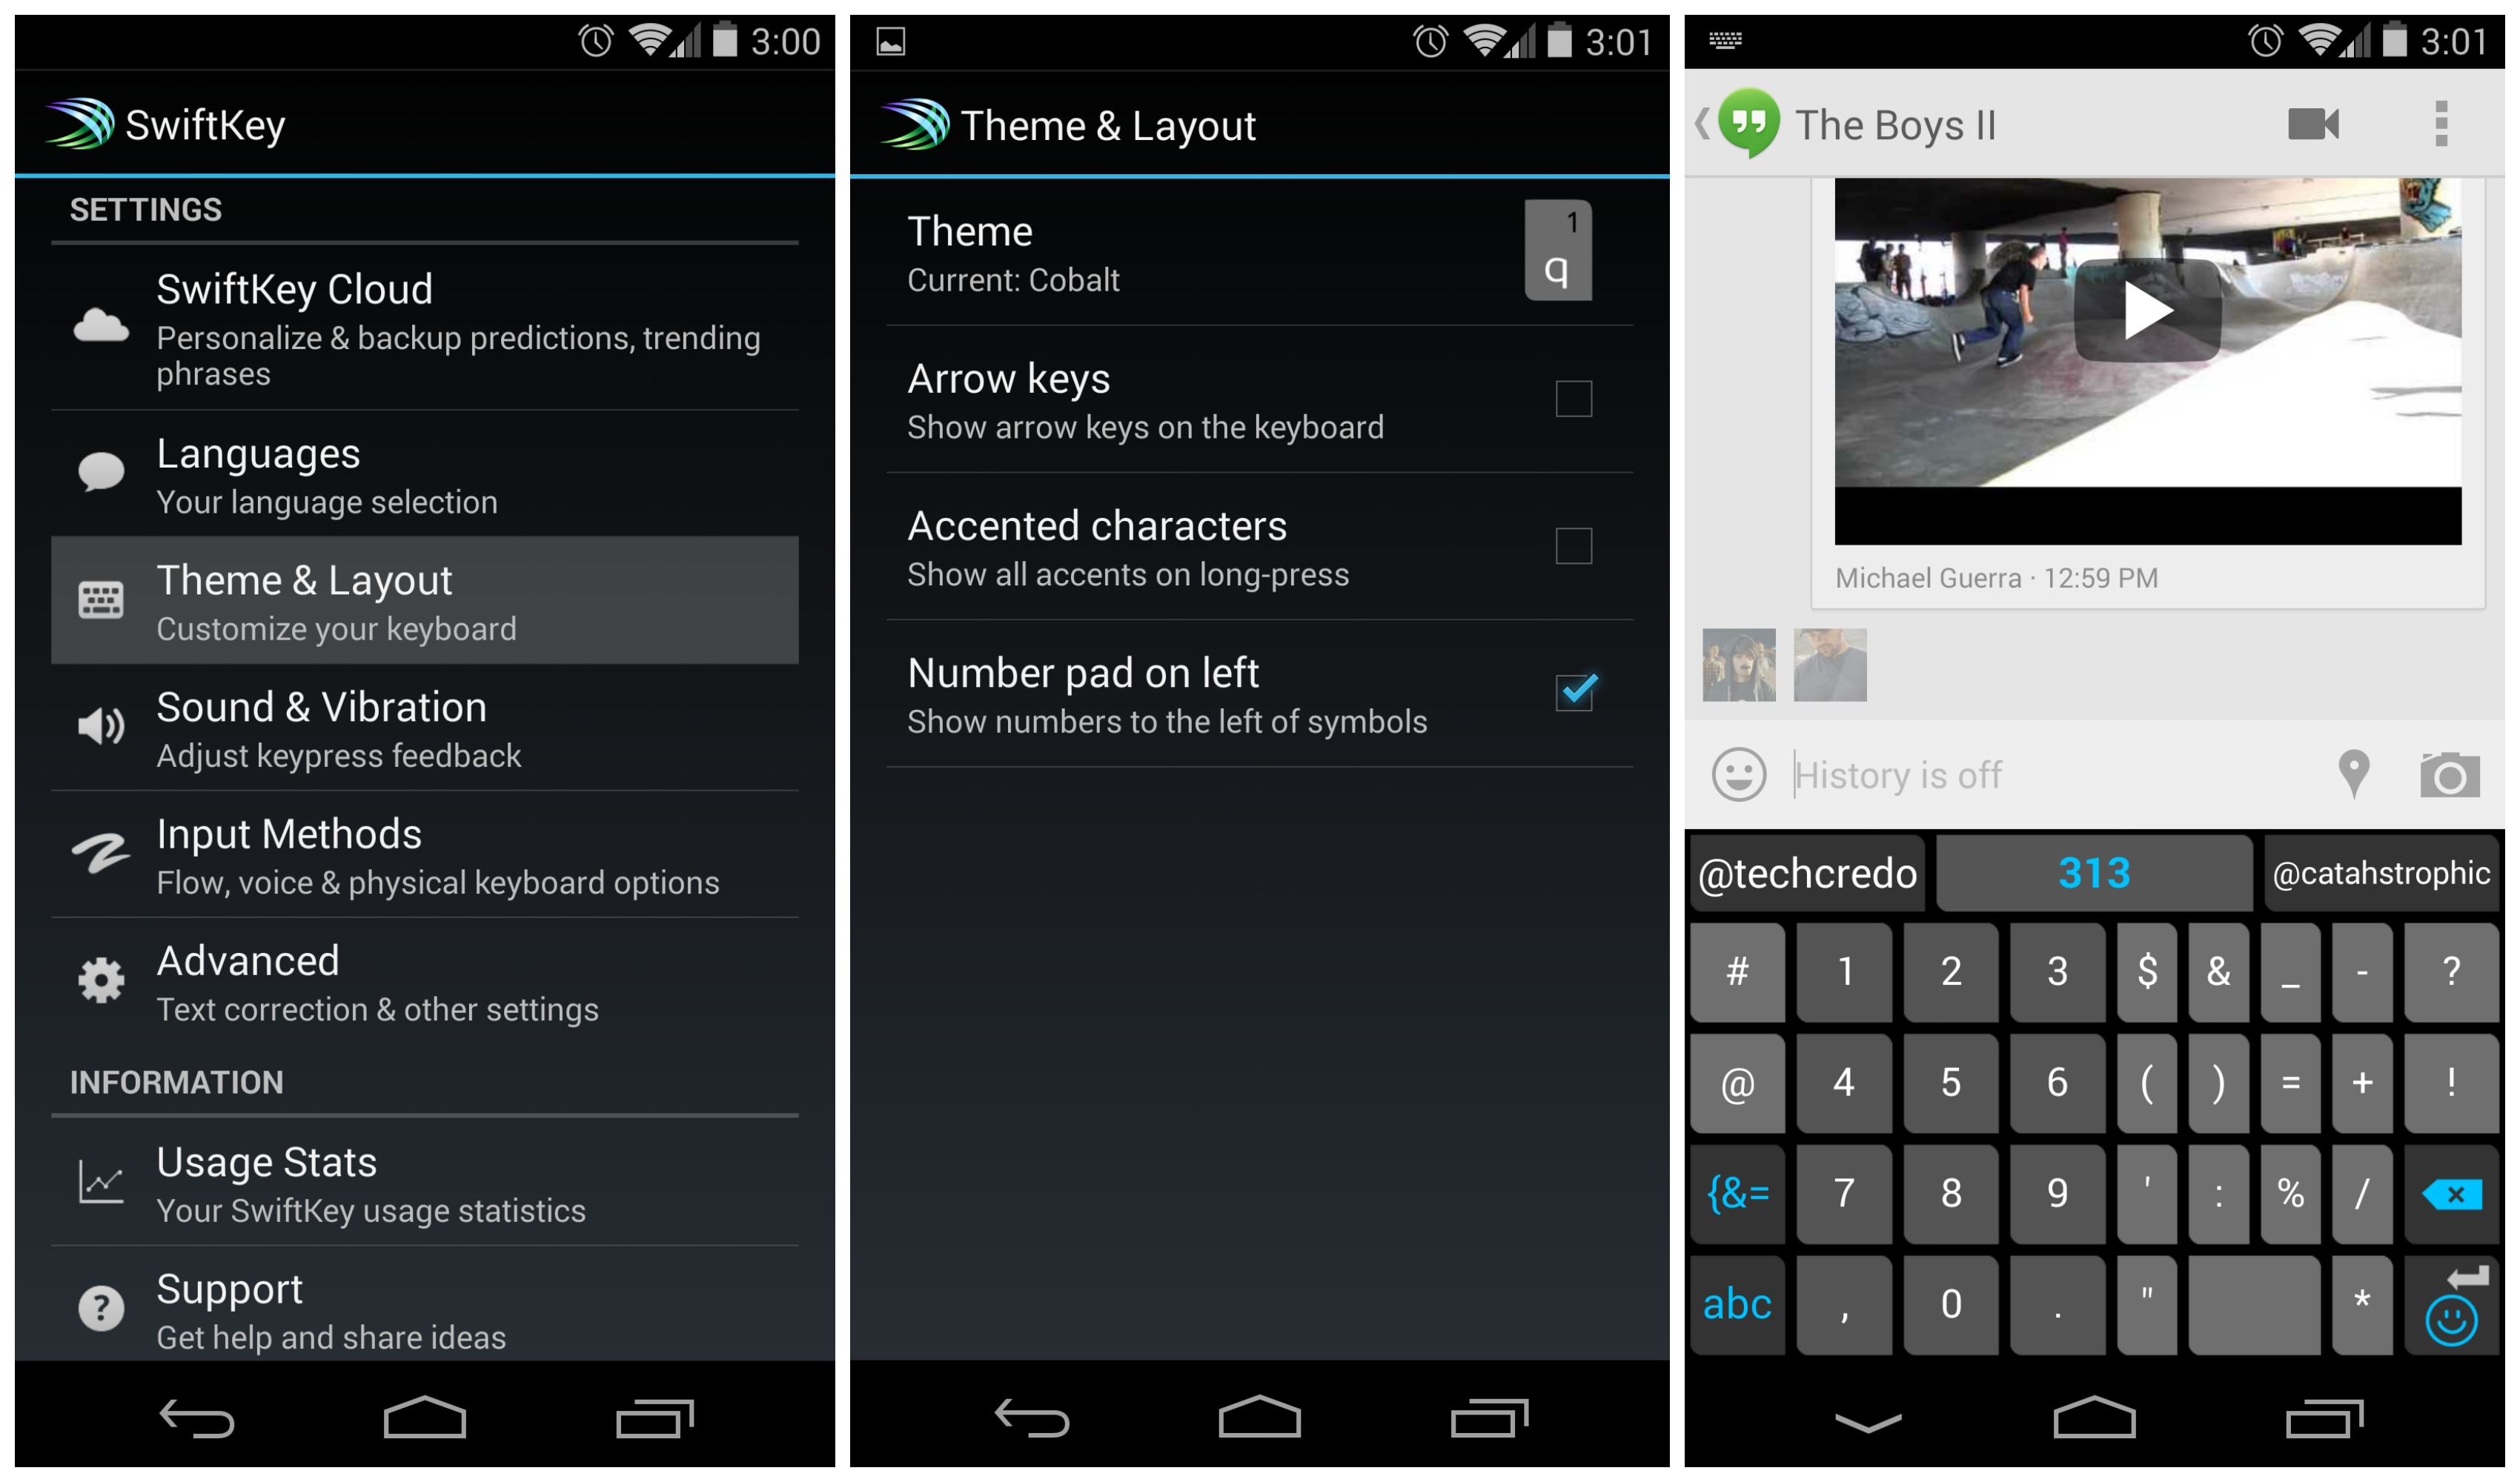 SwiftKey 4 3 1 update brings new number pad options while